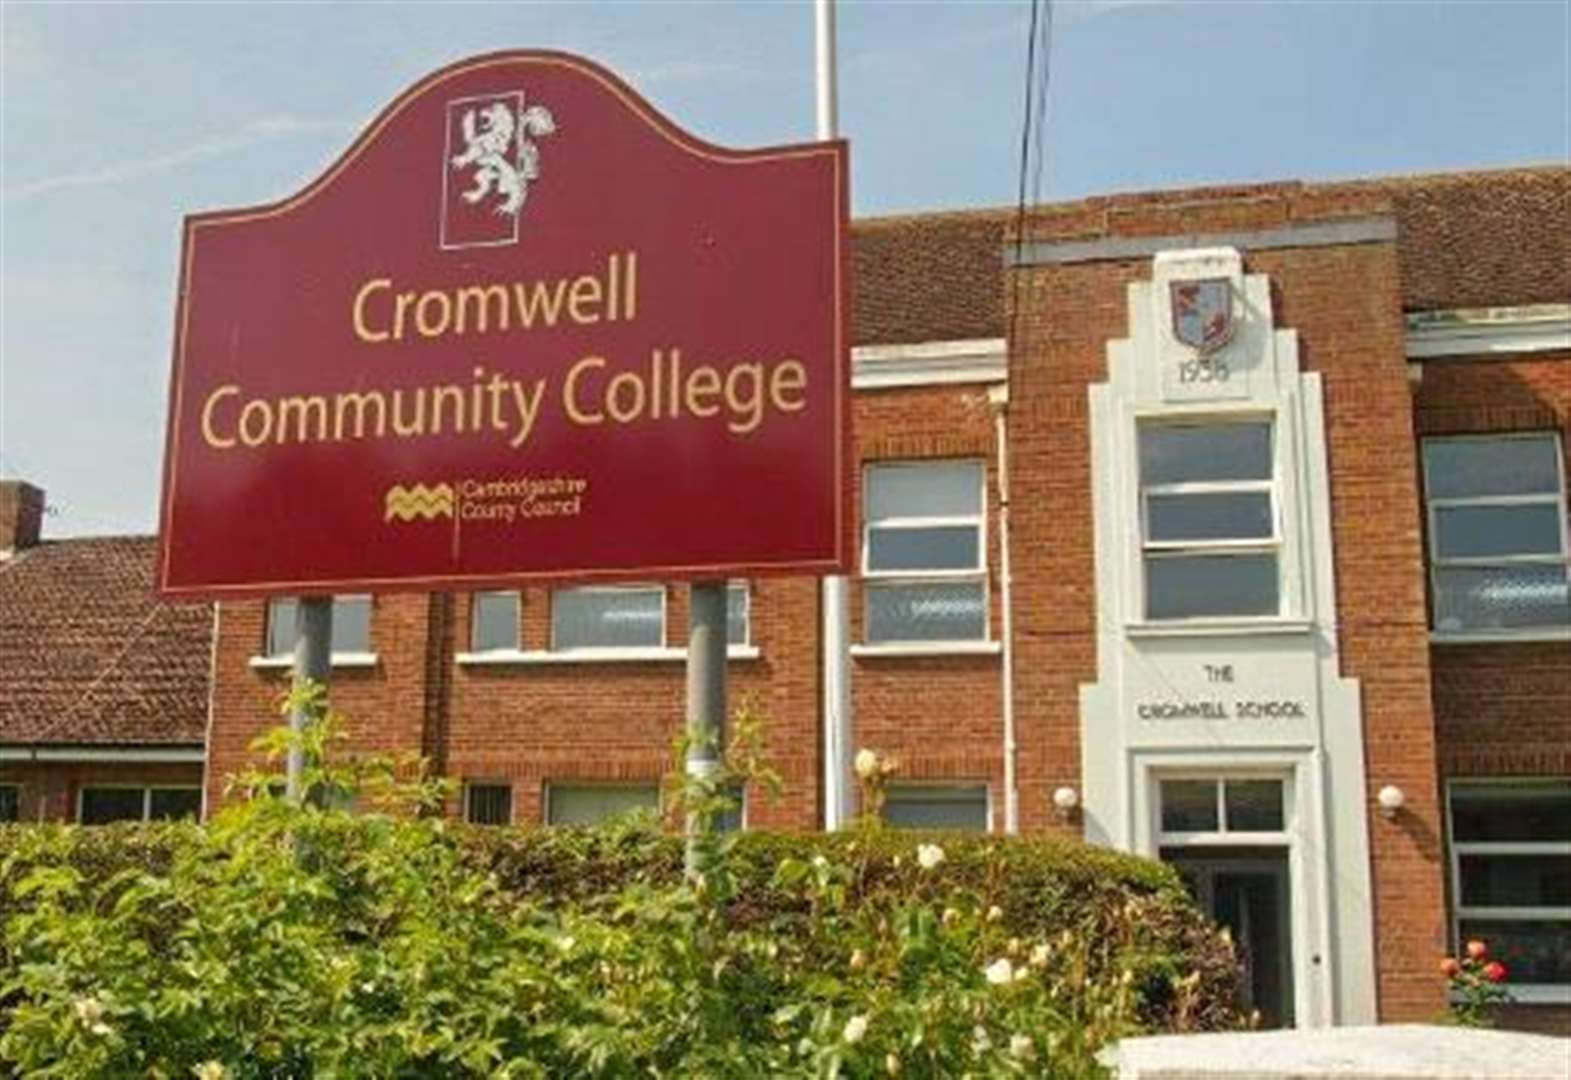 Ambitious plans to turn Crowmell Community College in Chatteris into one of the first all-through schools in Cambridgeshire have been submitted by the county council